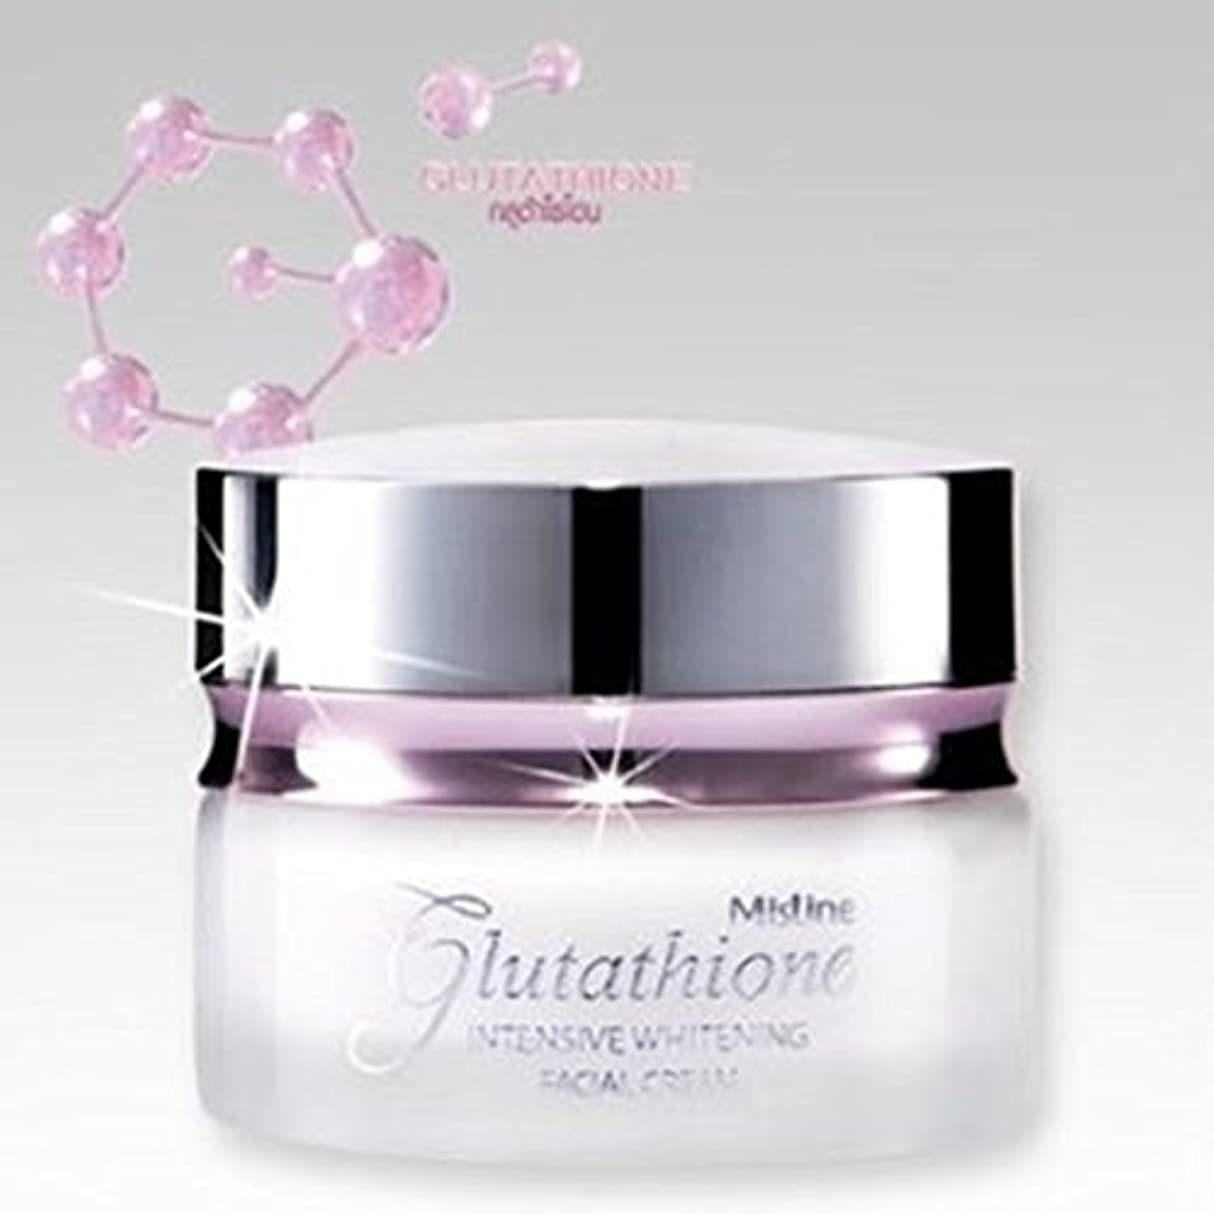 貯水池本部忌み嫌うMistine Glutathione - Intensive Whitening Facial Cream 30 Grams